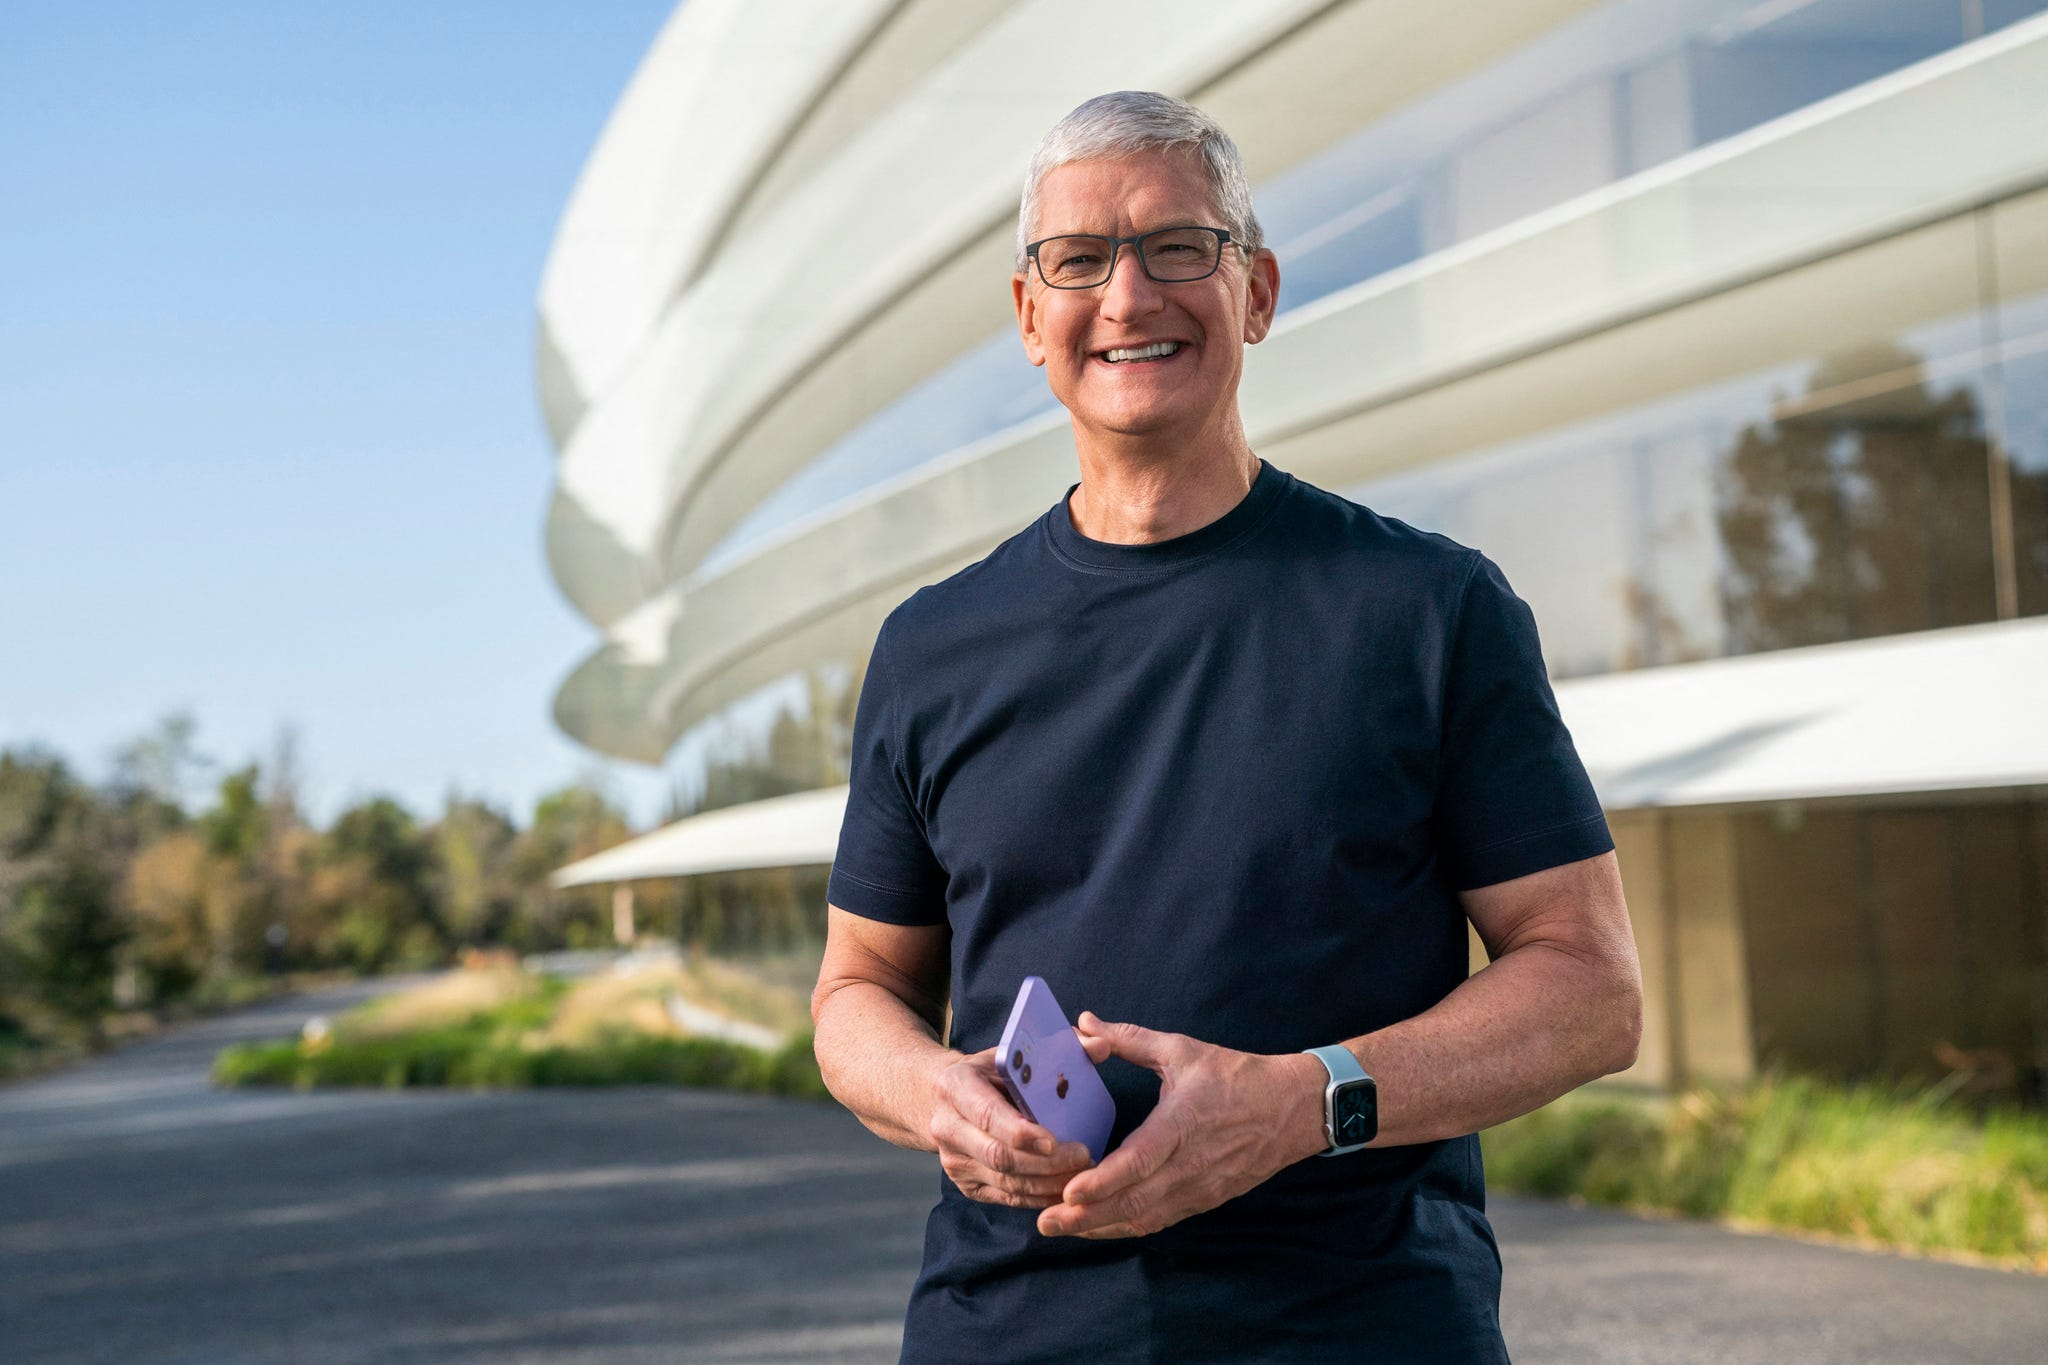 Apple continues COVID-19 momentum with strong sales of iPads, Macs ... and, of course, iPhones